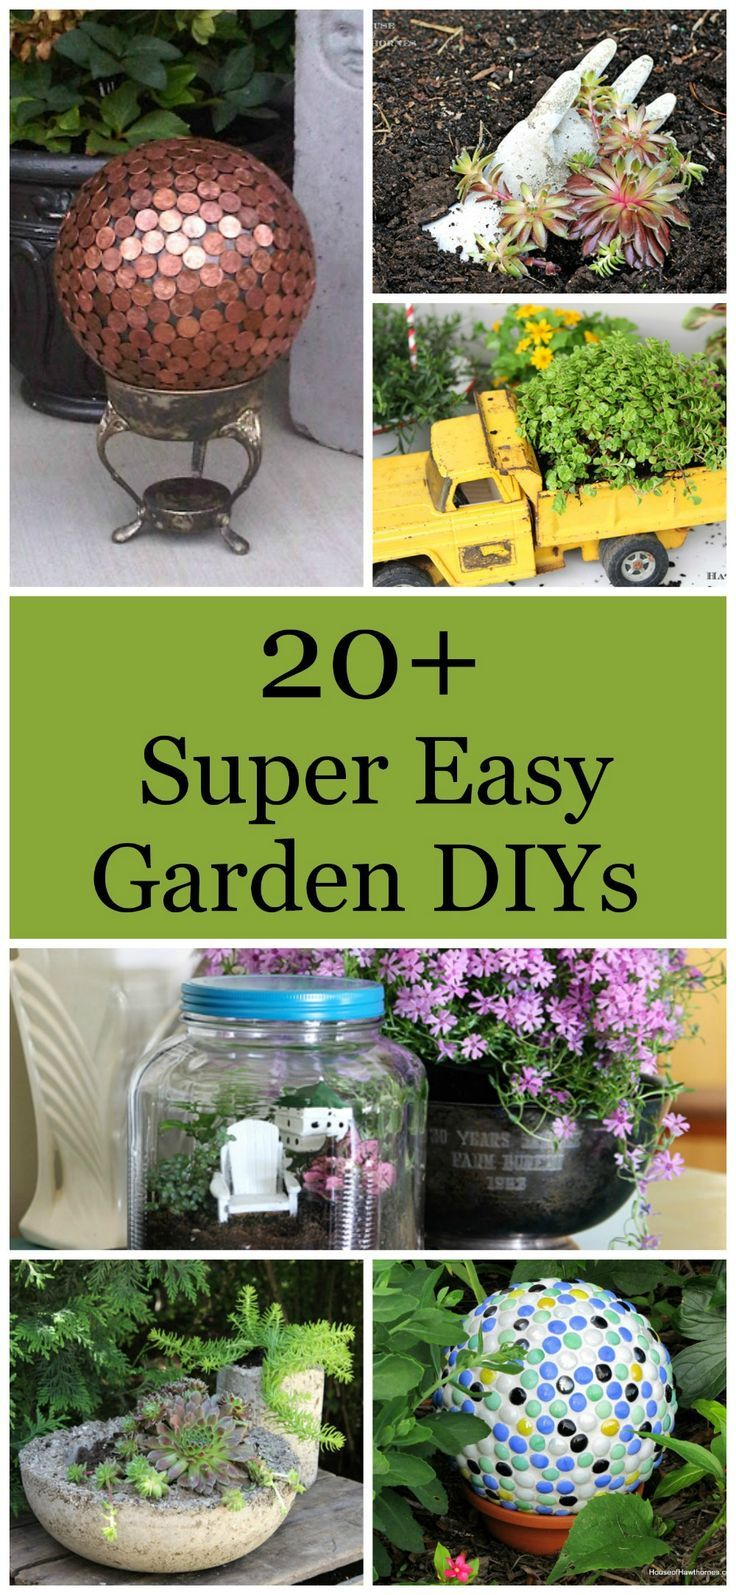 Over 20 Diy Gardening Projects That Are Super Easy And Fun